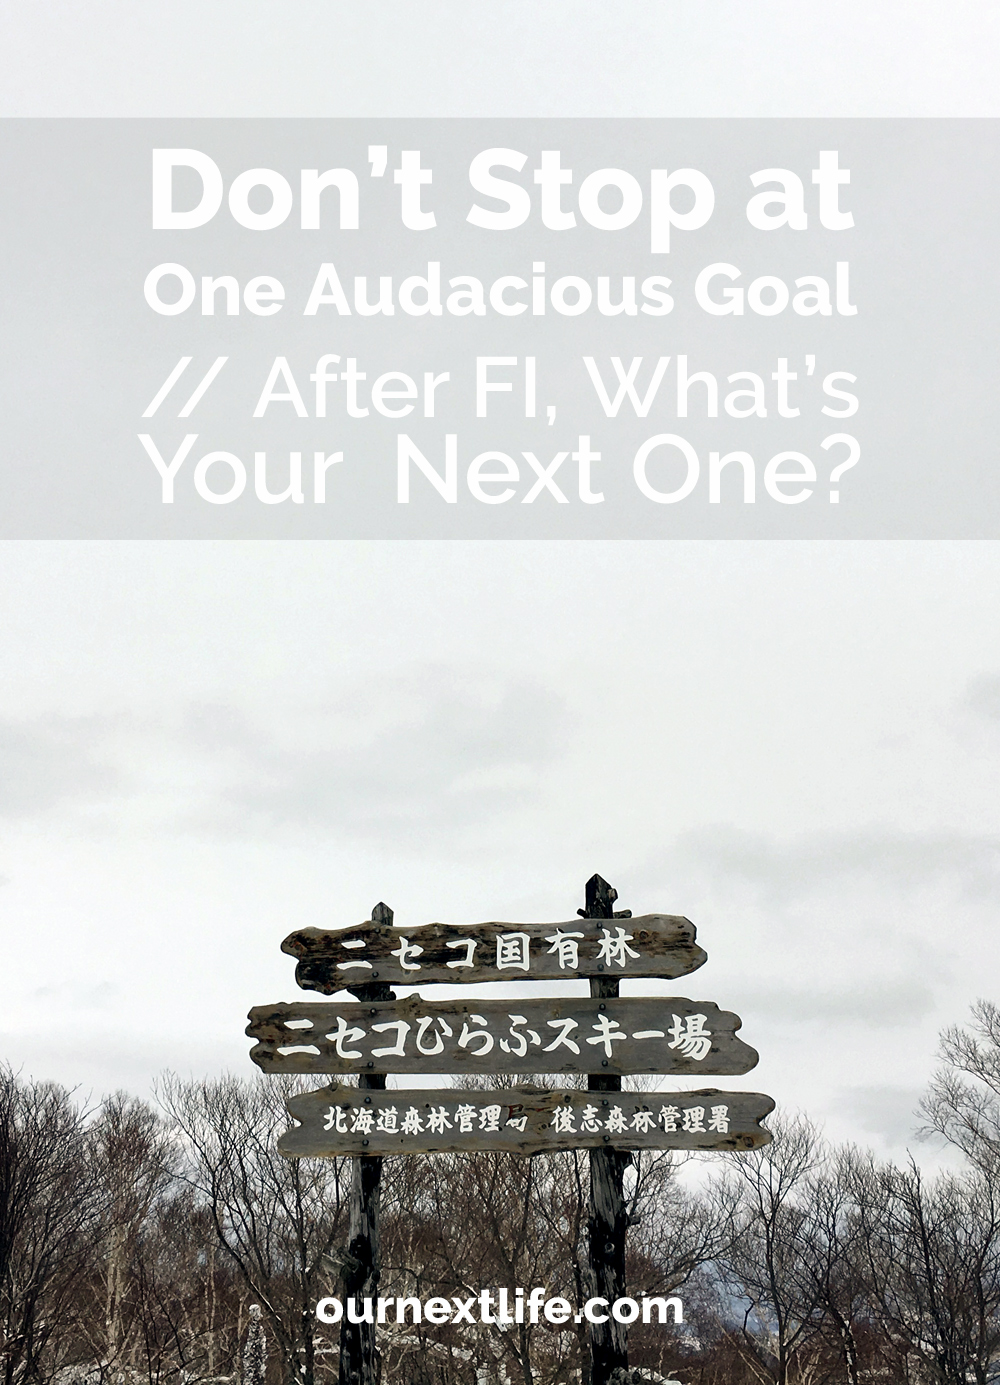 OurNextLife.com // Don't Stop at One Audacious Goal // After FI, What's Your Next One?